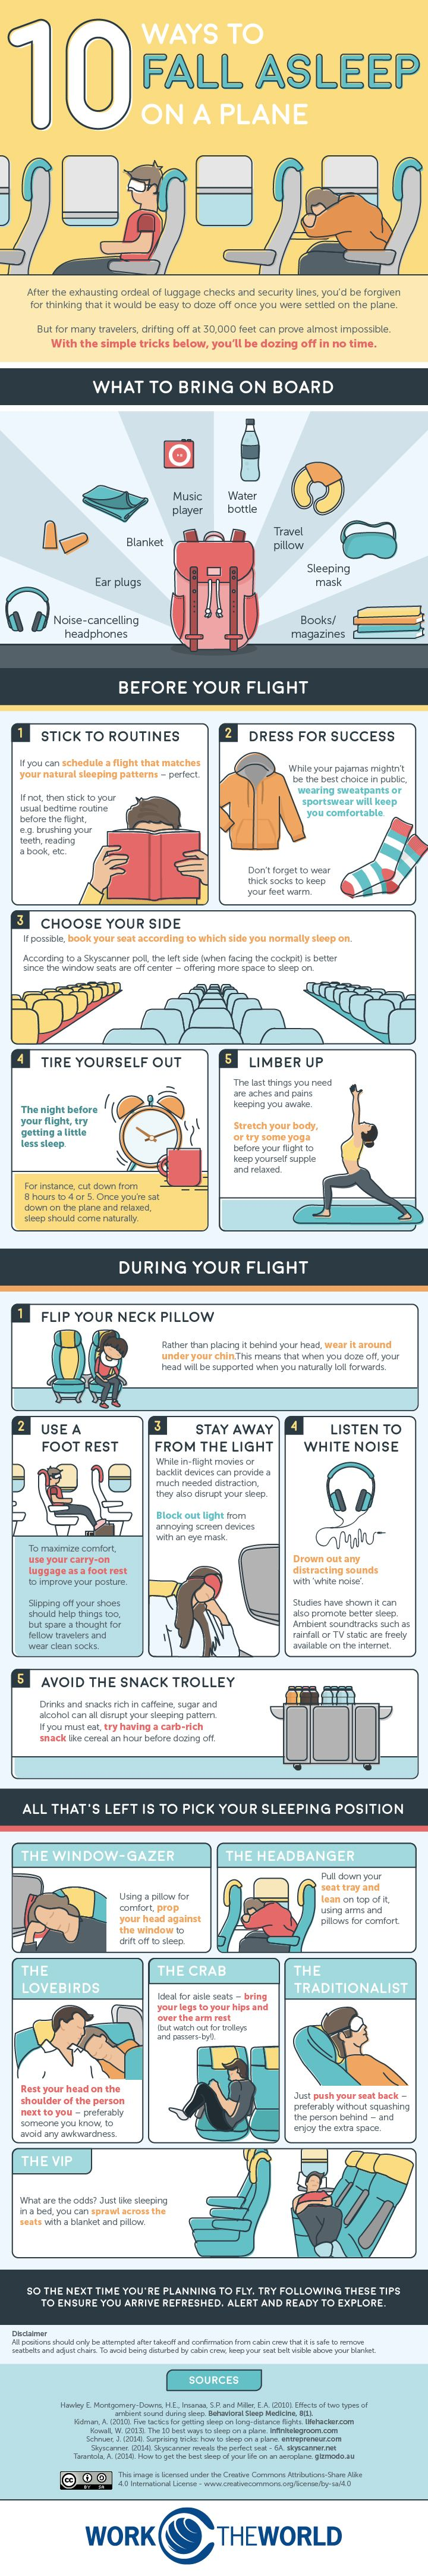 10 Ways to Fall Asleep on a Plane #infographic #Travel